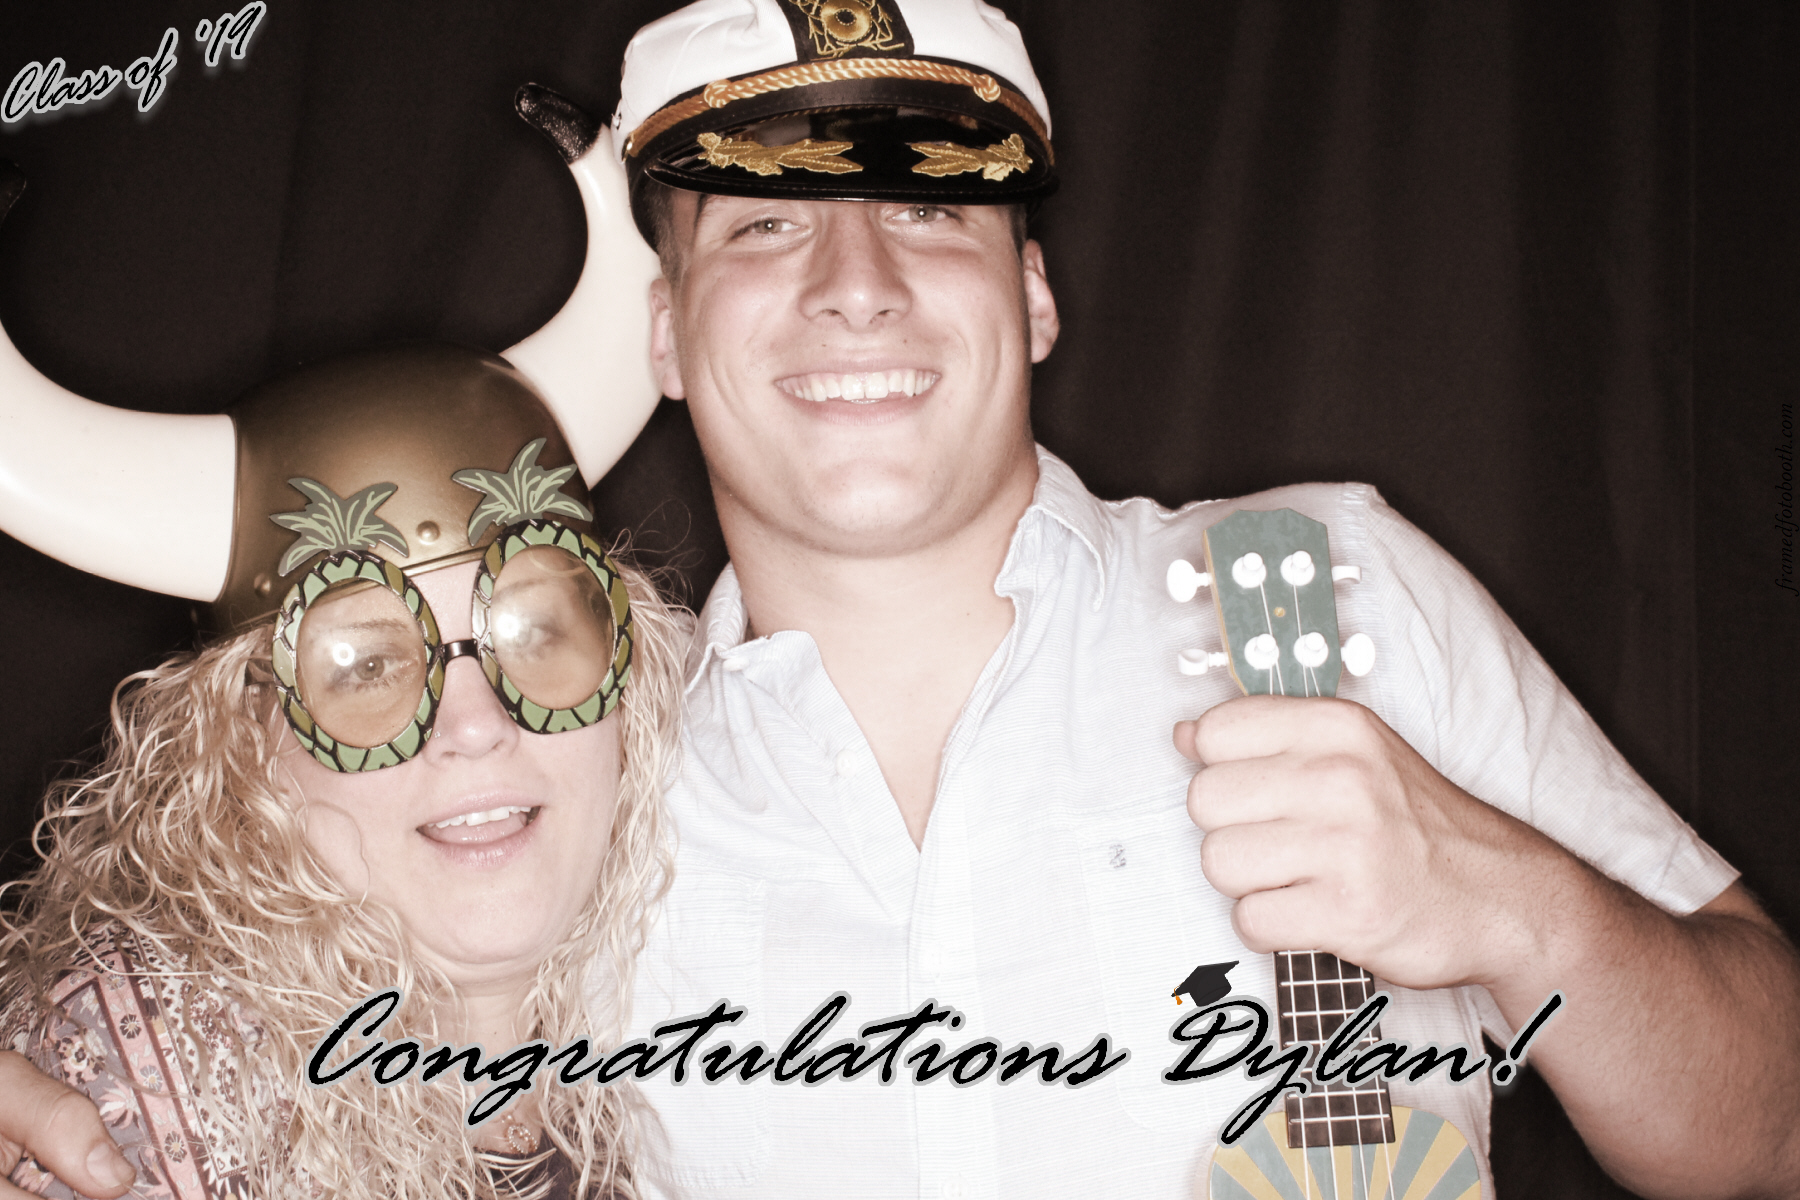 Dylan's Grad Party